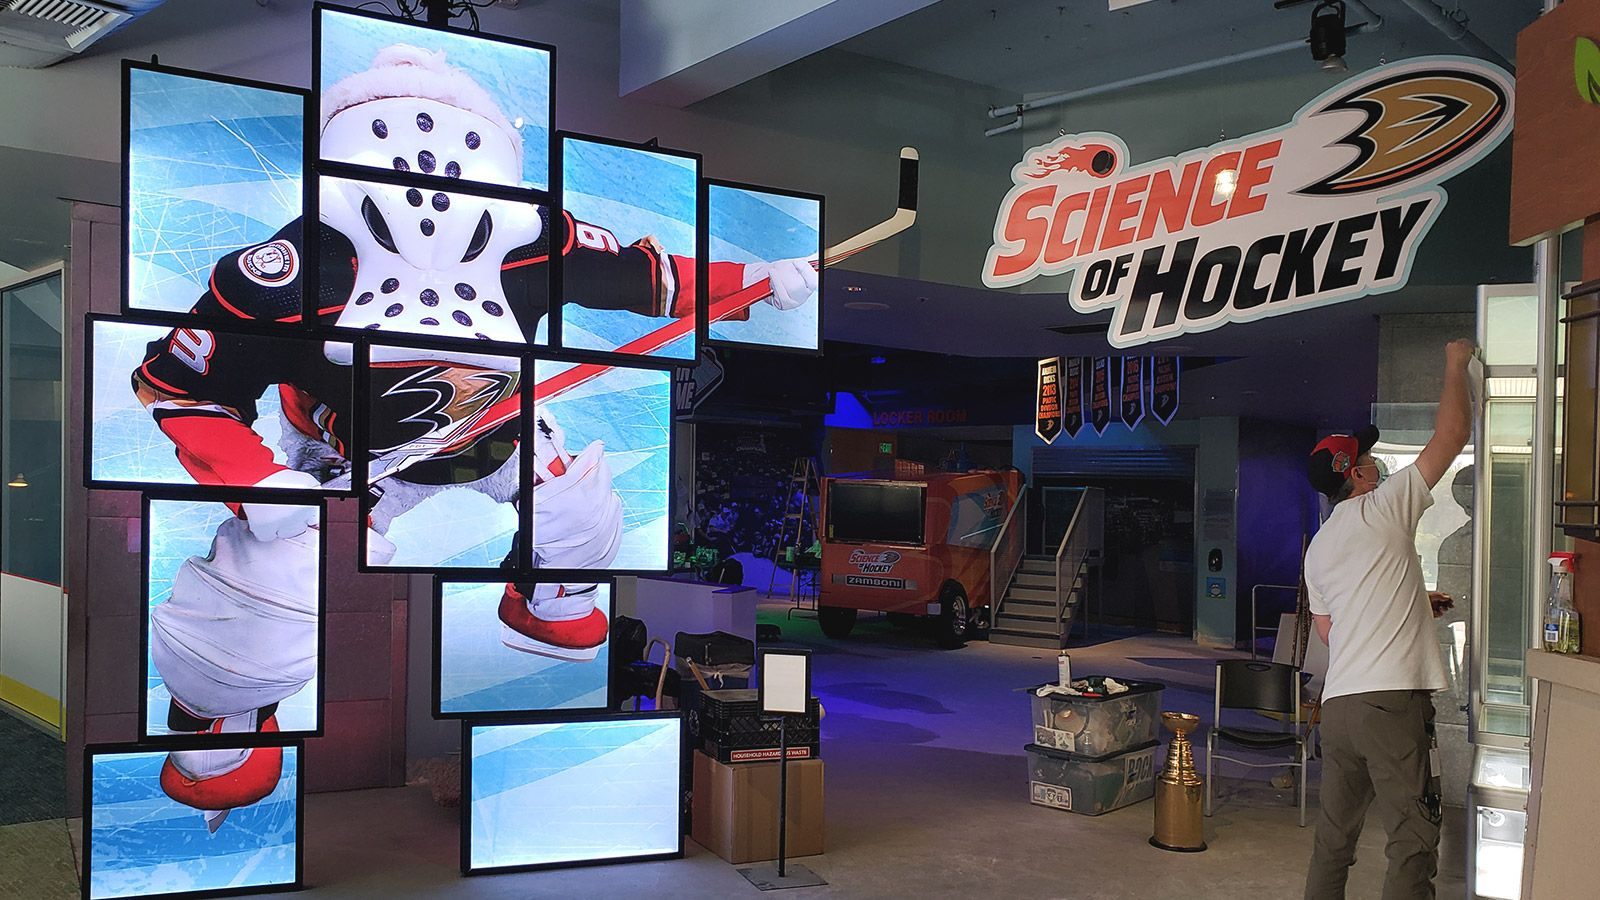 science of hockey hanging sign